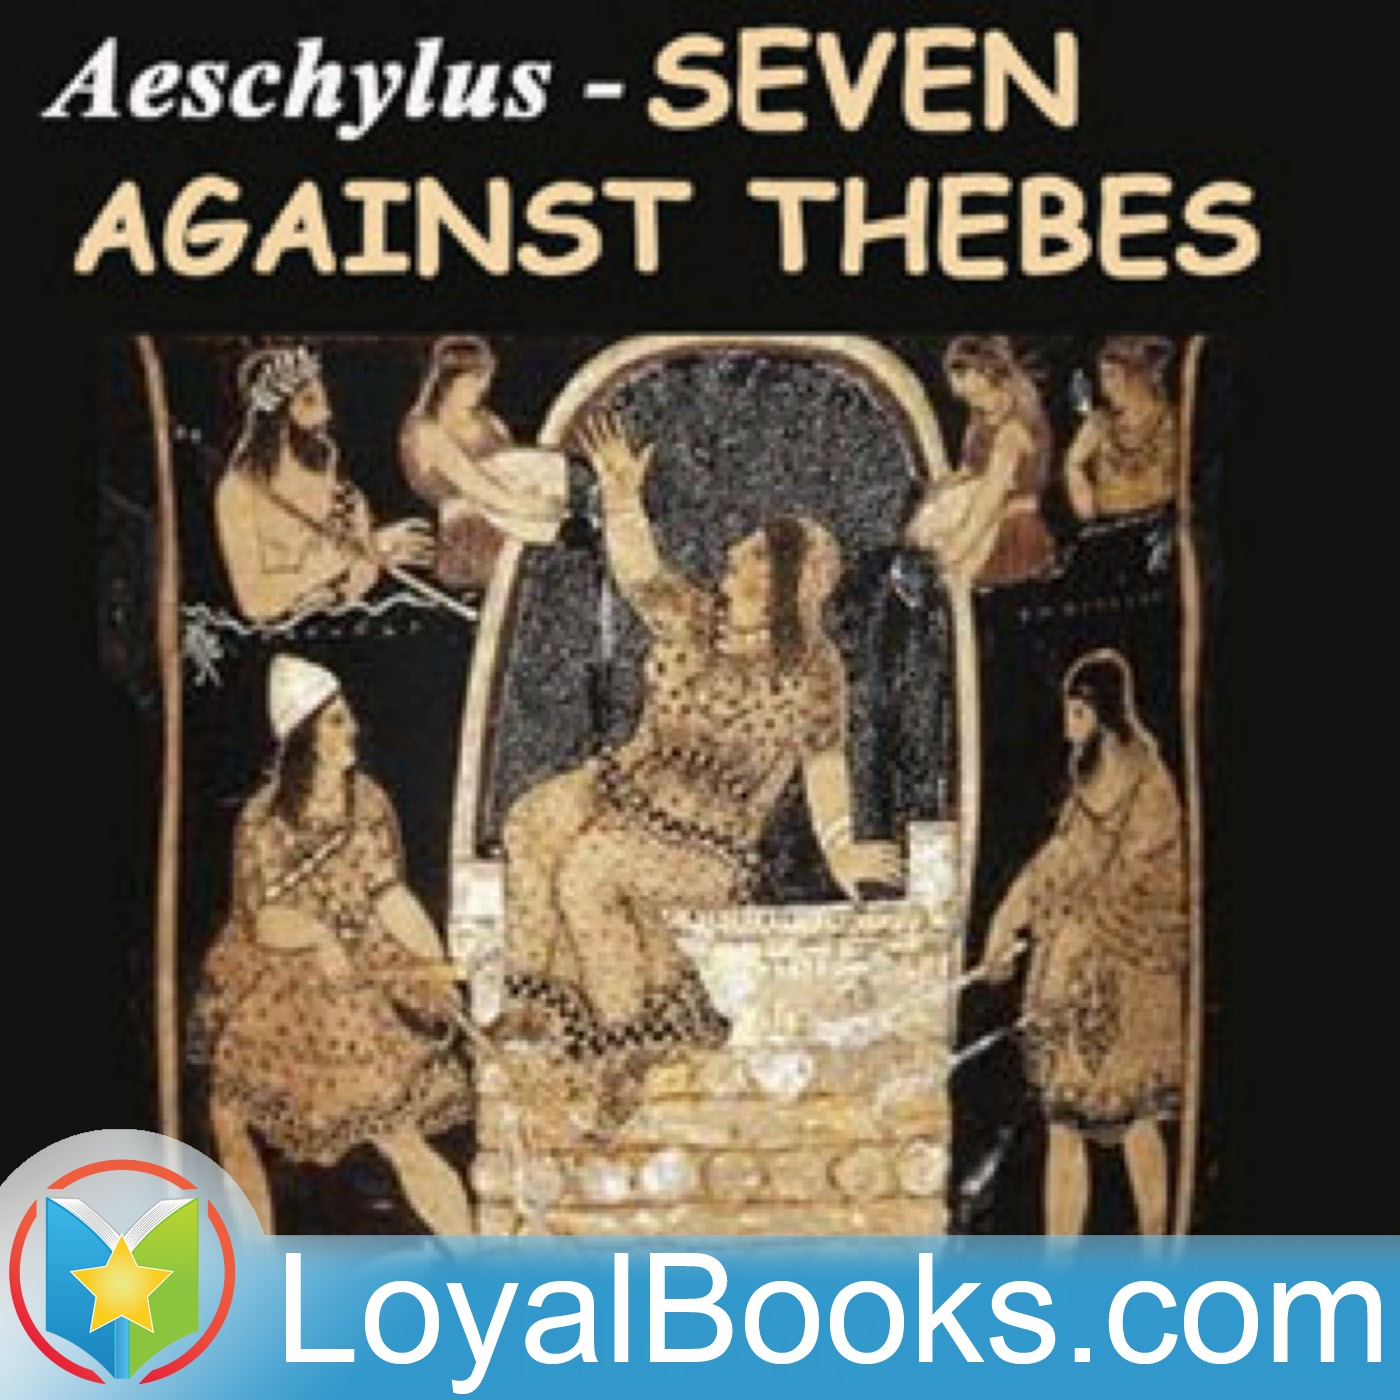 an overview of the oedipus seven against thebes and medea plays The stories of aeschylus' plays illustrate that there is no (part i) and oedipus (part ii) suppliants (unknown date but after seven against thebes.